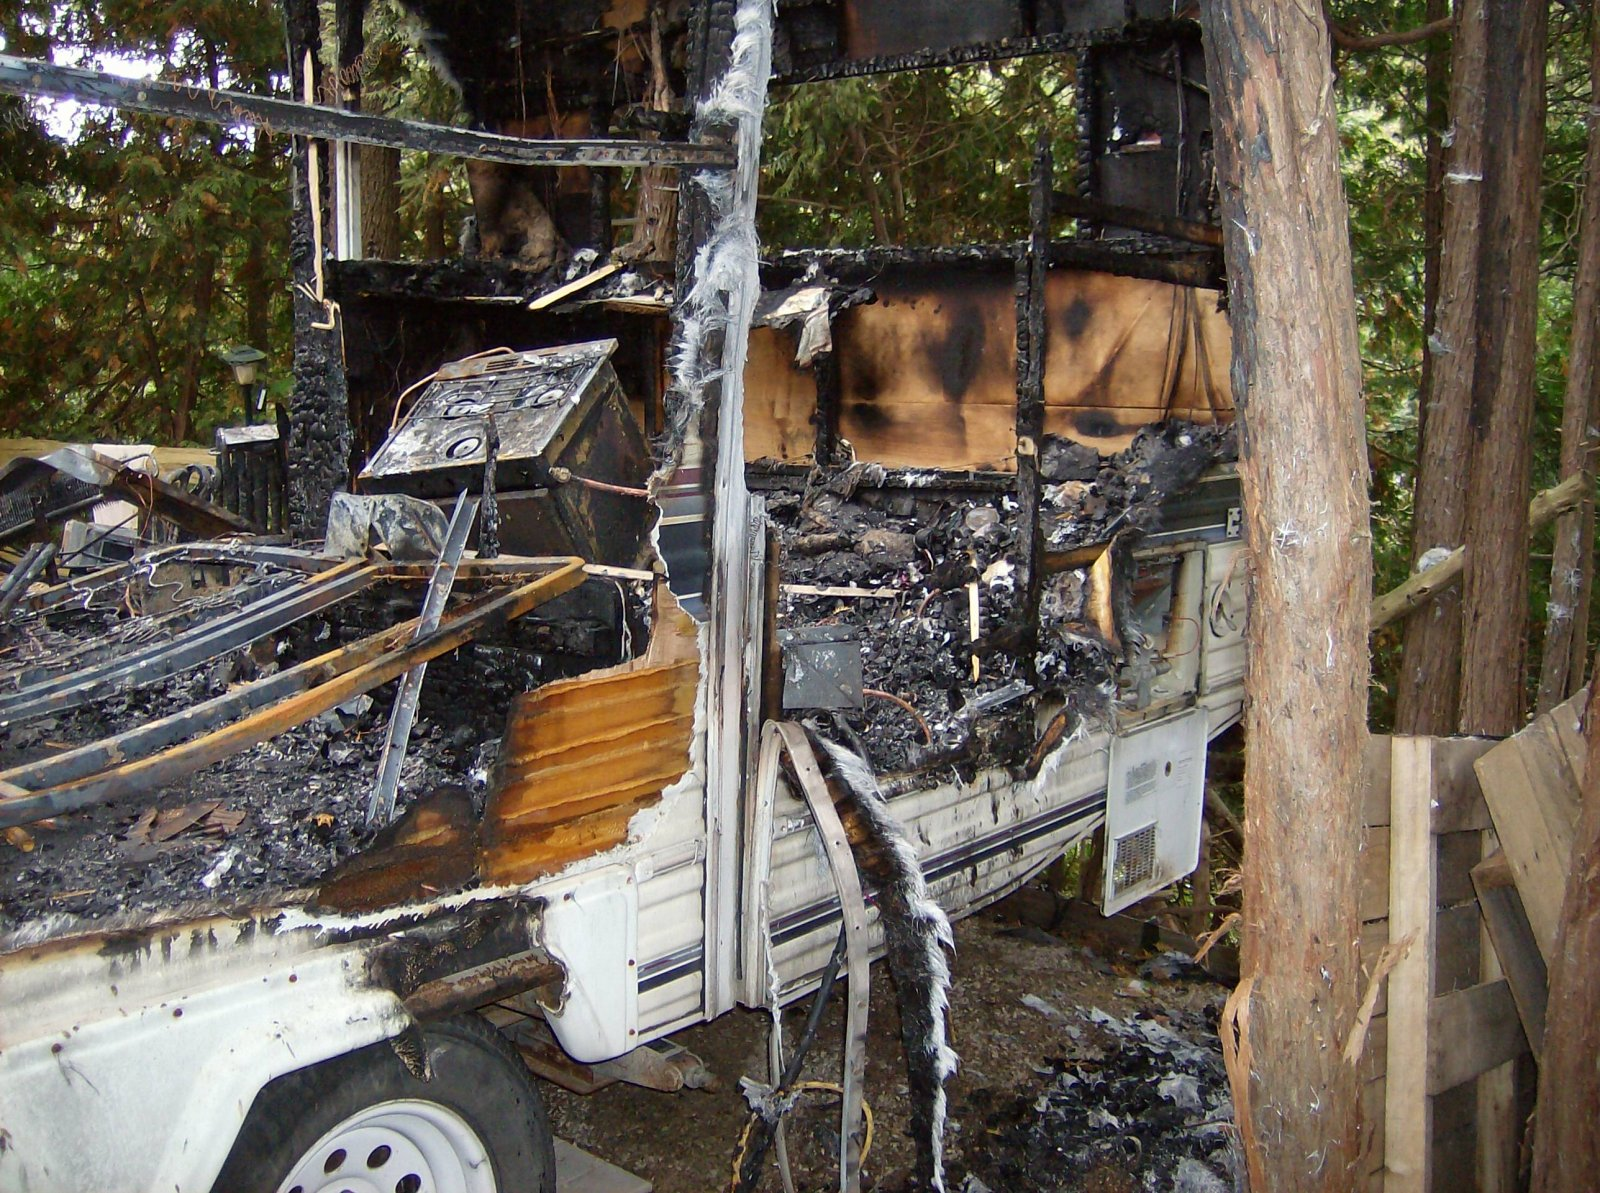 Click image for larger version  Name:Fire Damaged Trailer 011.jpg Views:97 Size:511.9 KB ID:112195